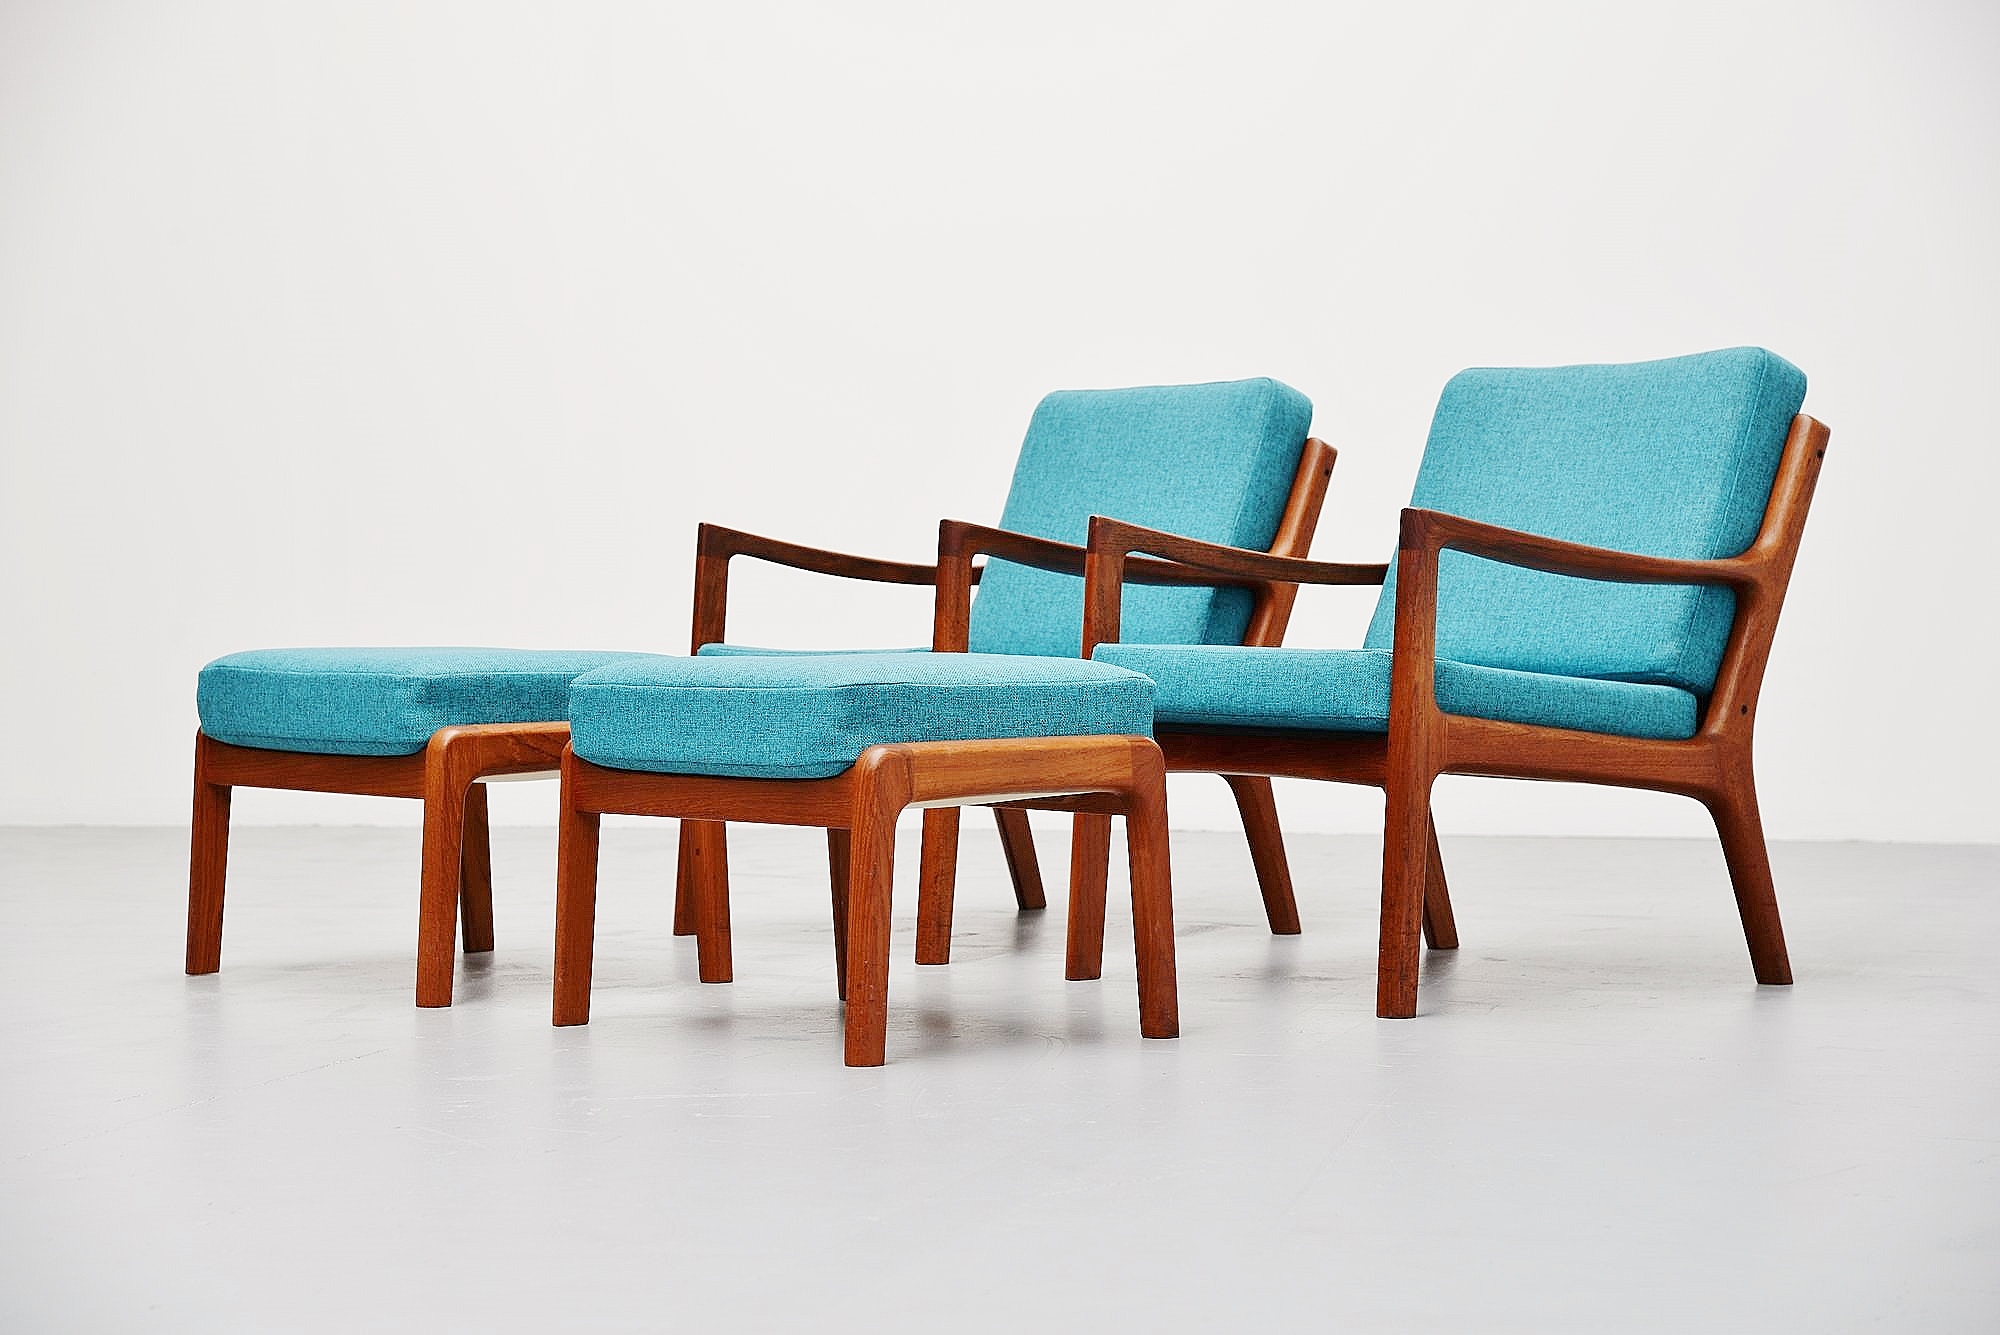 Astounding Ole Wanscher Senator Chairs Set France Son 1951 Gmtry Best Dining Table And Chair Ideas Images Gmtryco